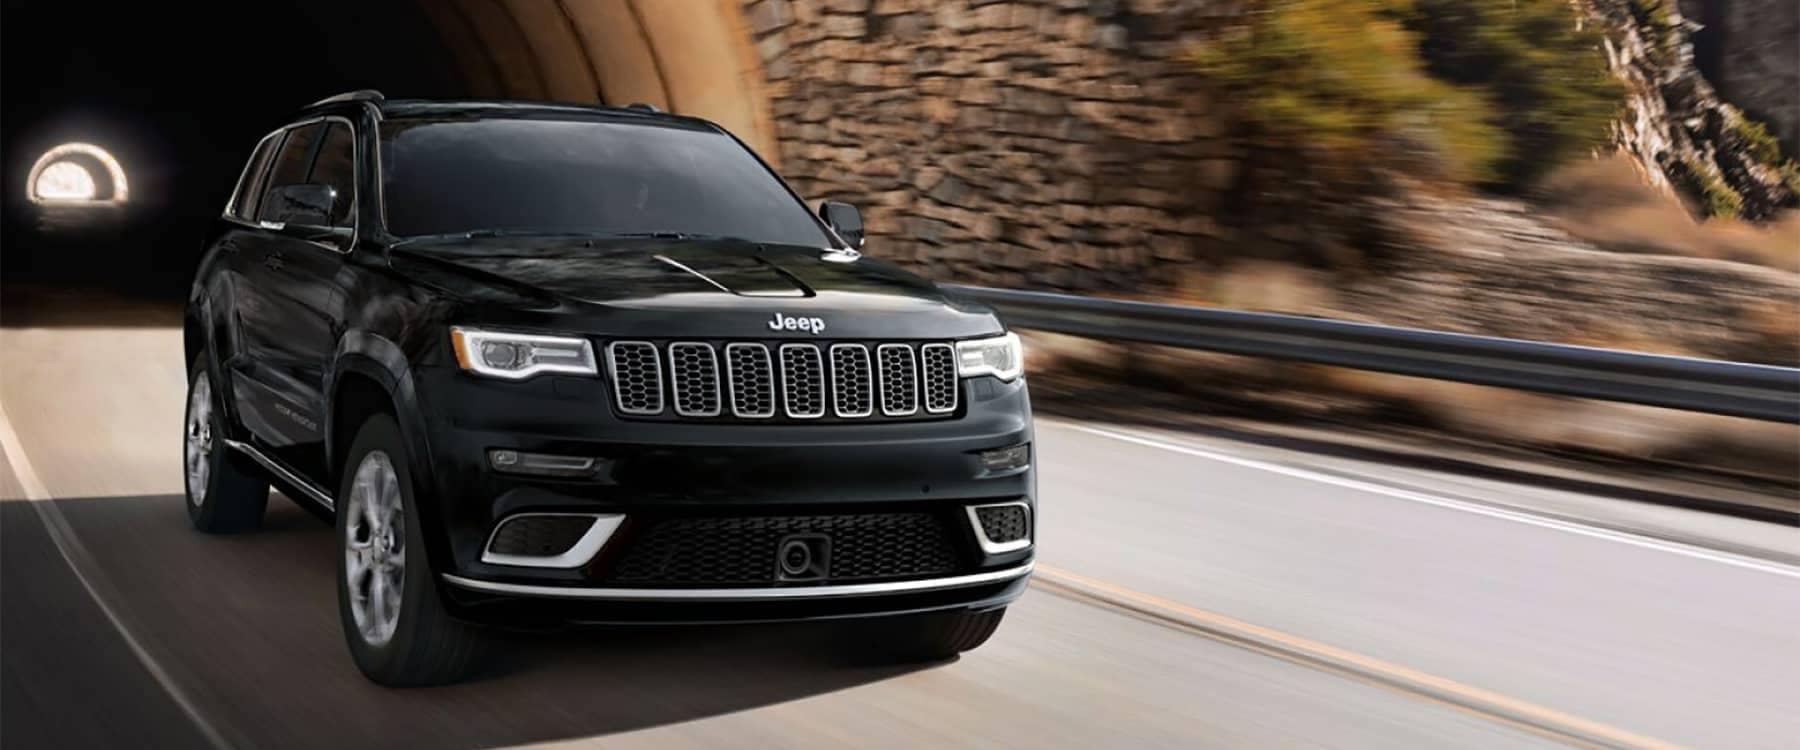 Jeep Grand Cherokee Driving